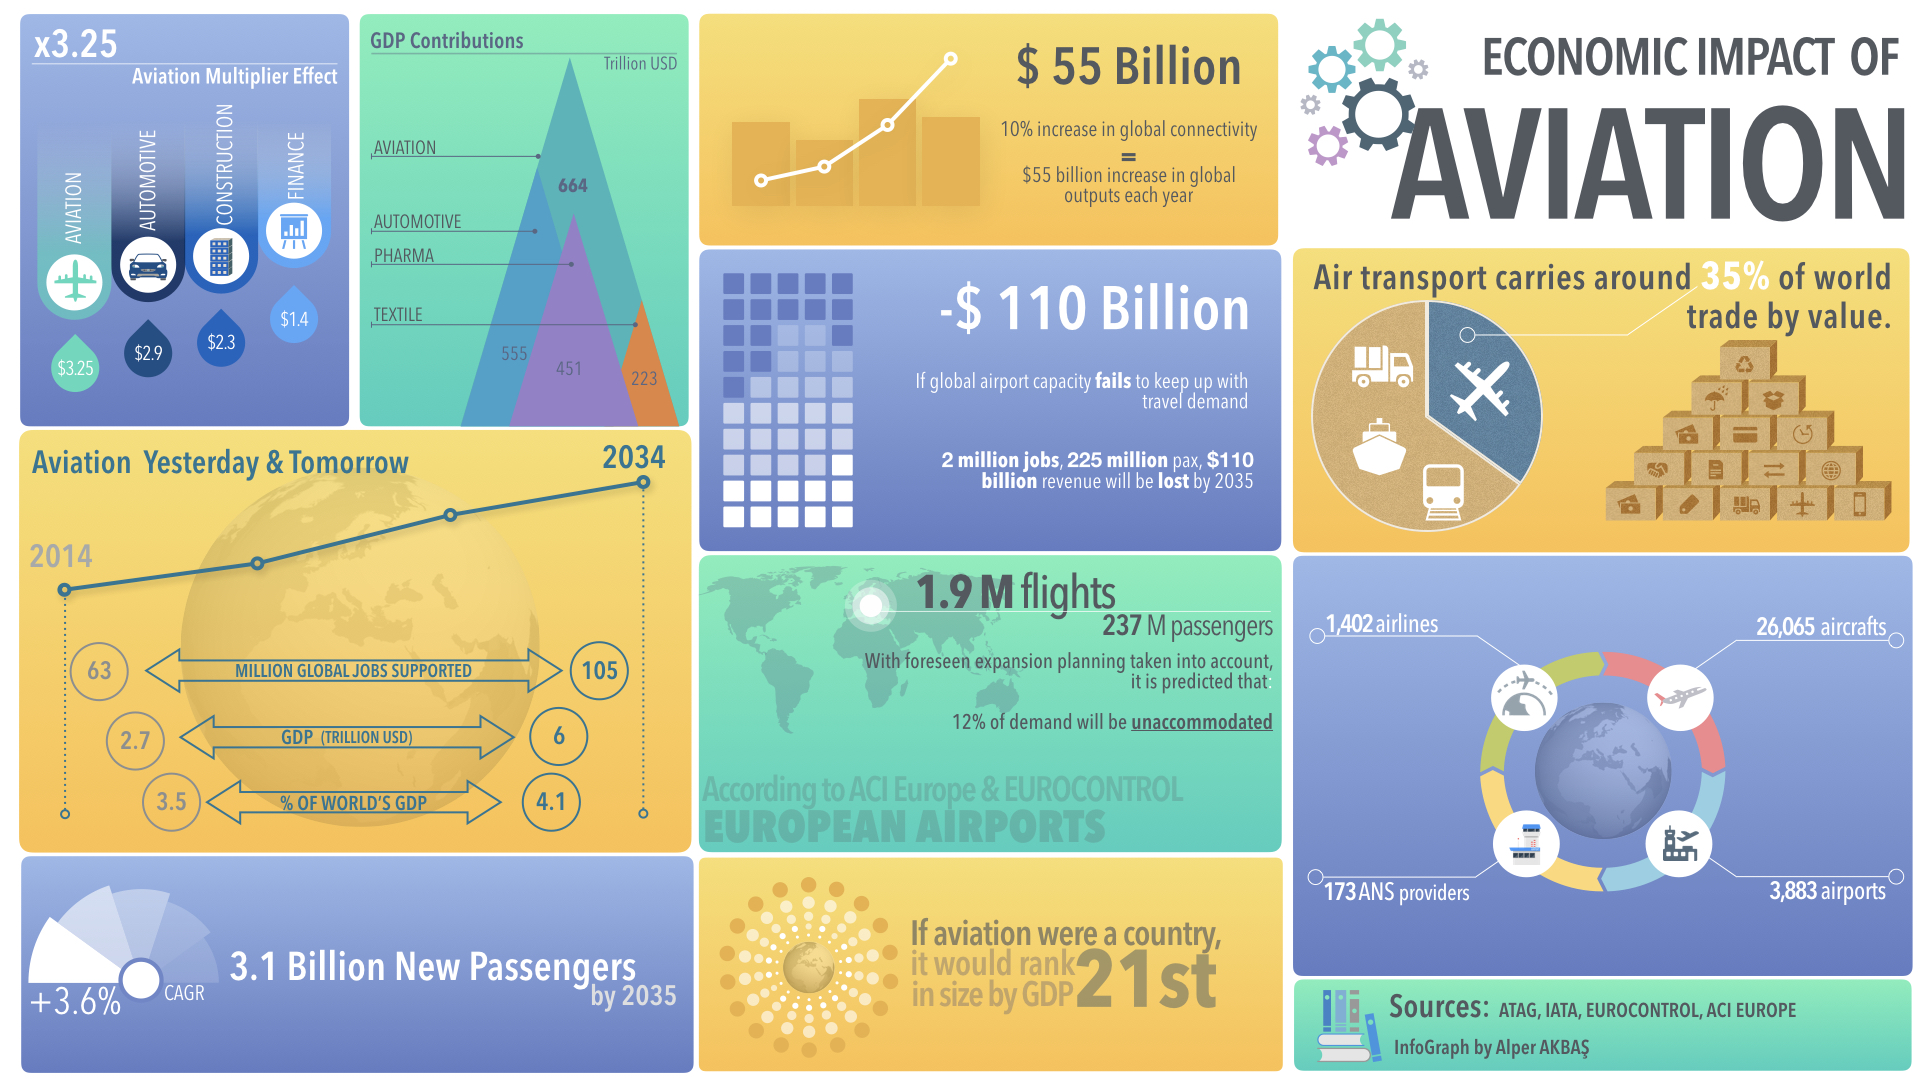 Economic Impact of Aviation